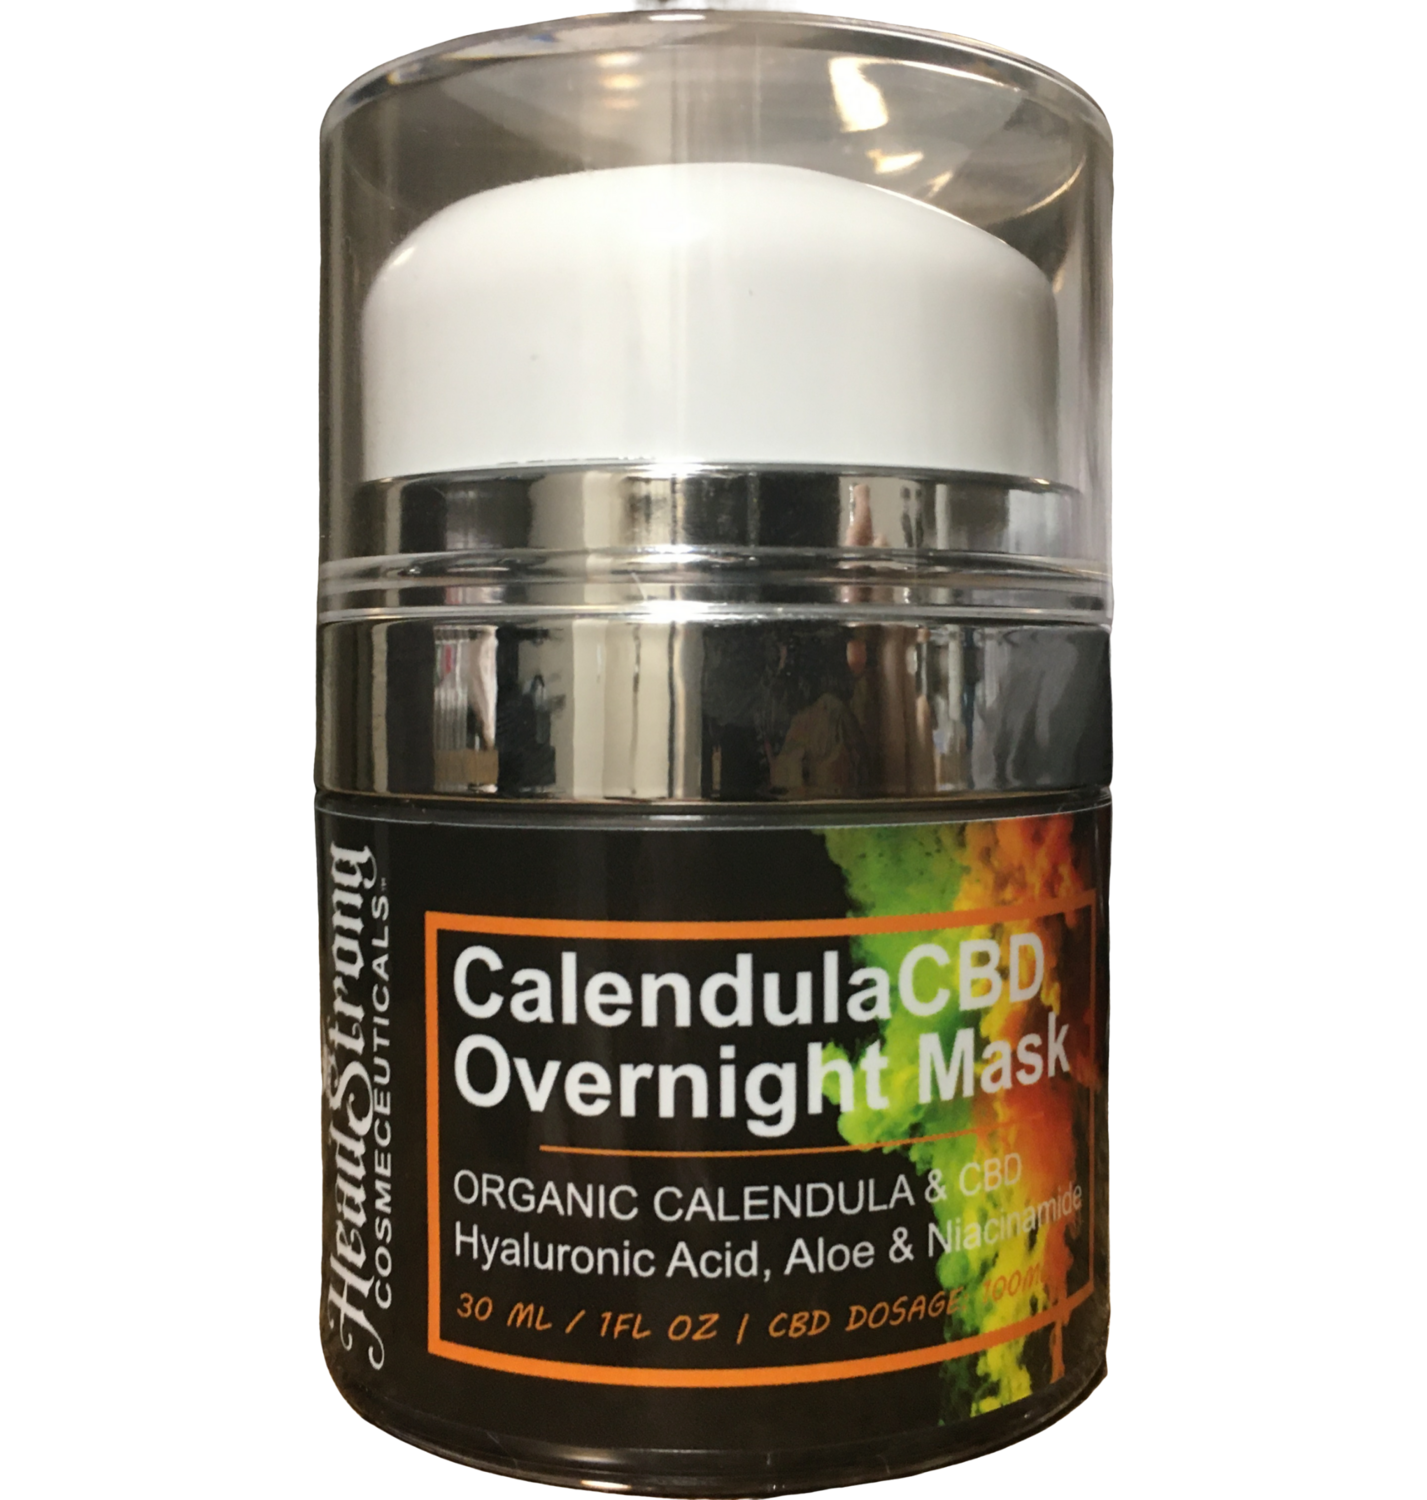 HeadStrong Cosmeceuticals CalendulaCBD Overnight Mask